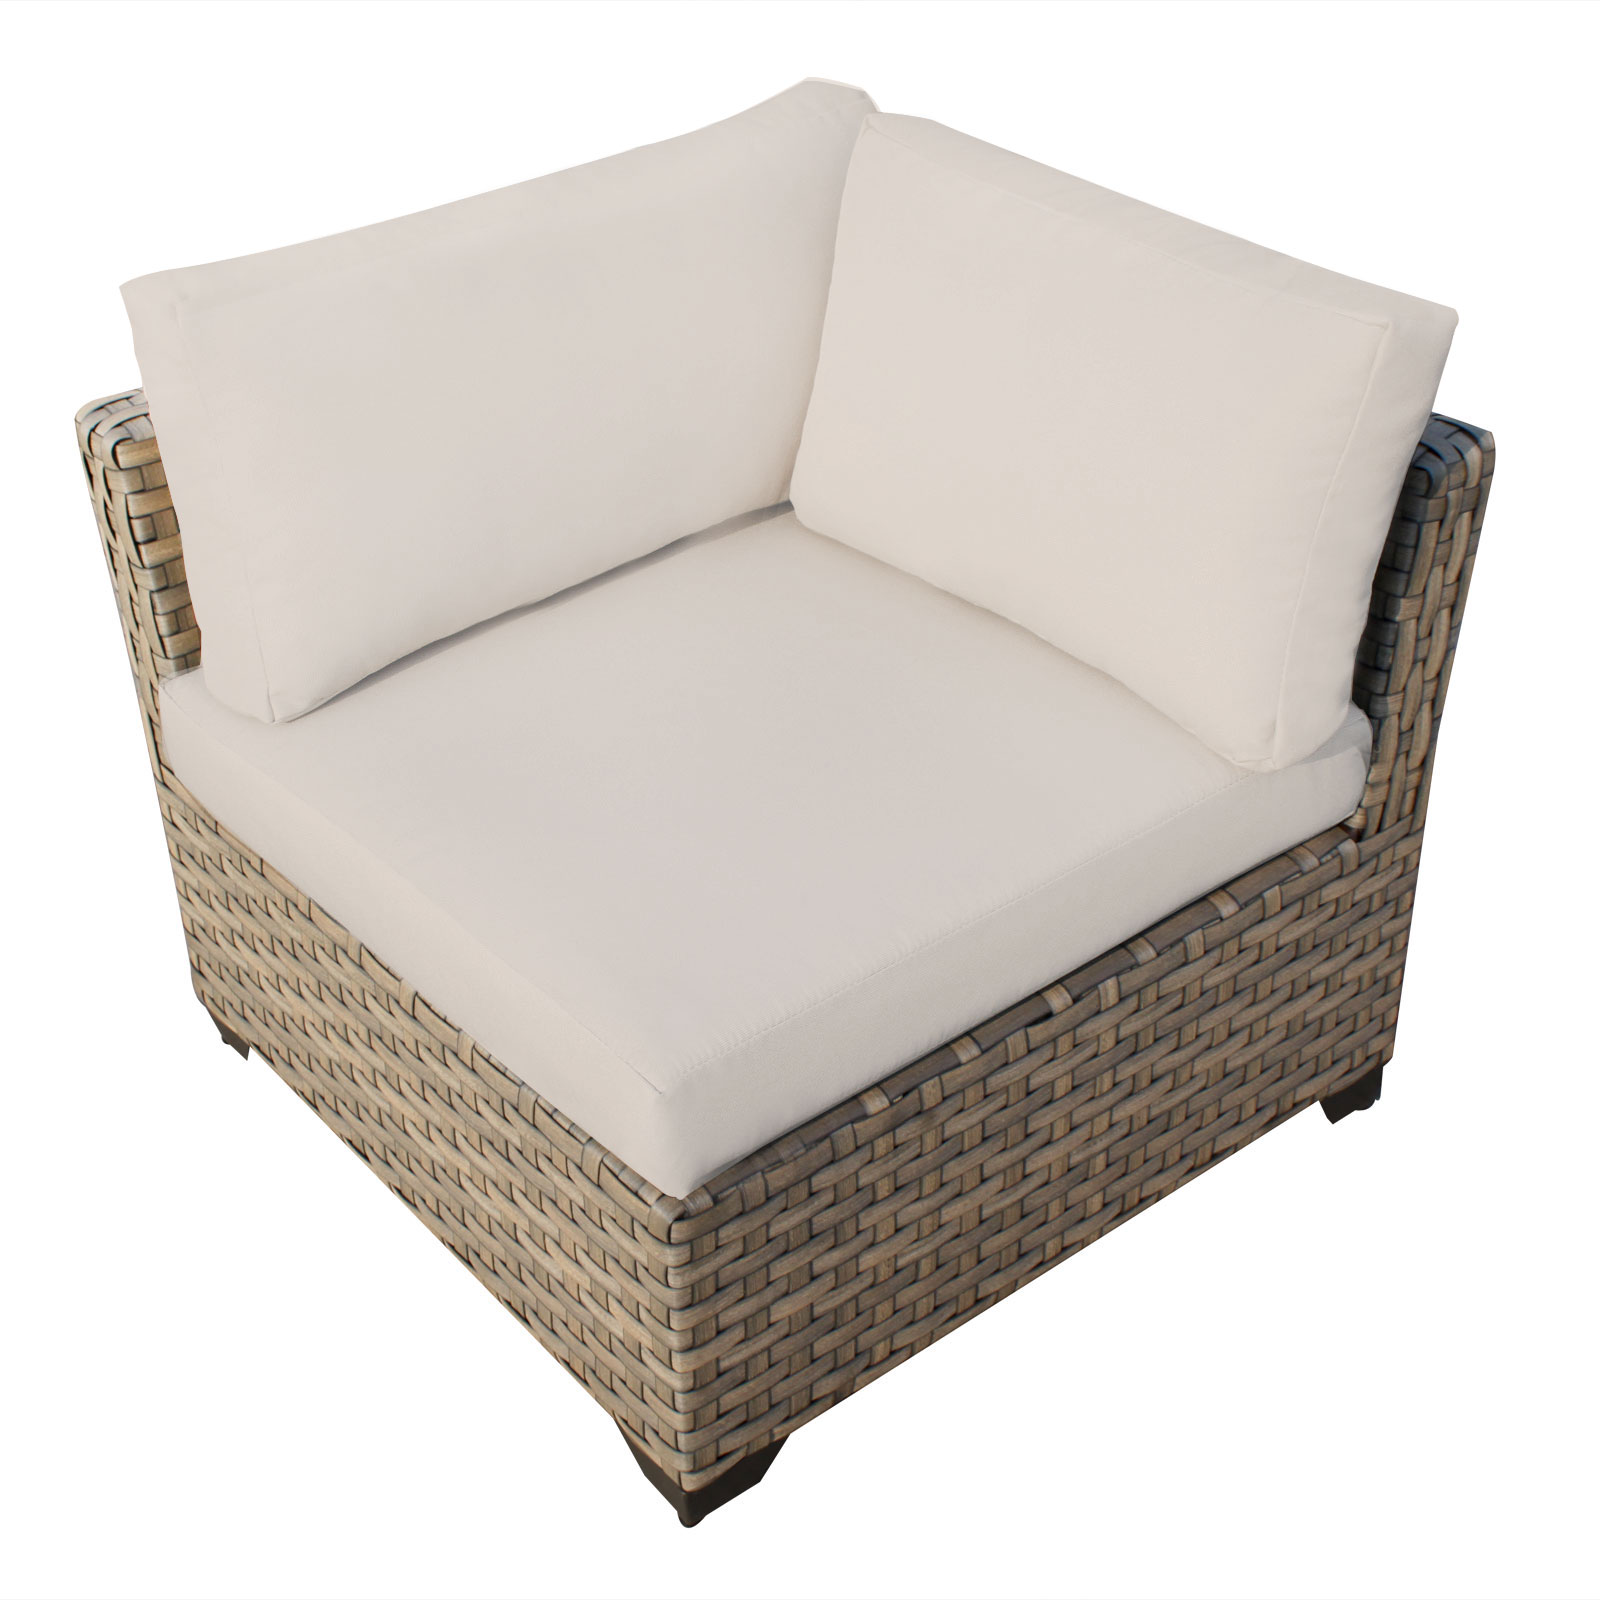 Hampton 7 Piece Outdoor Wicker Patio Furniture Set 07a   Walmart.com